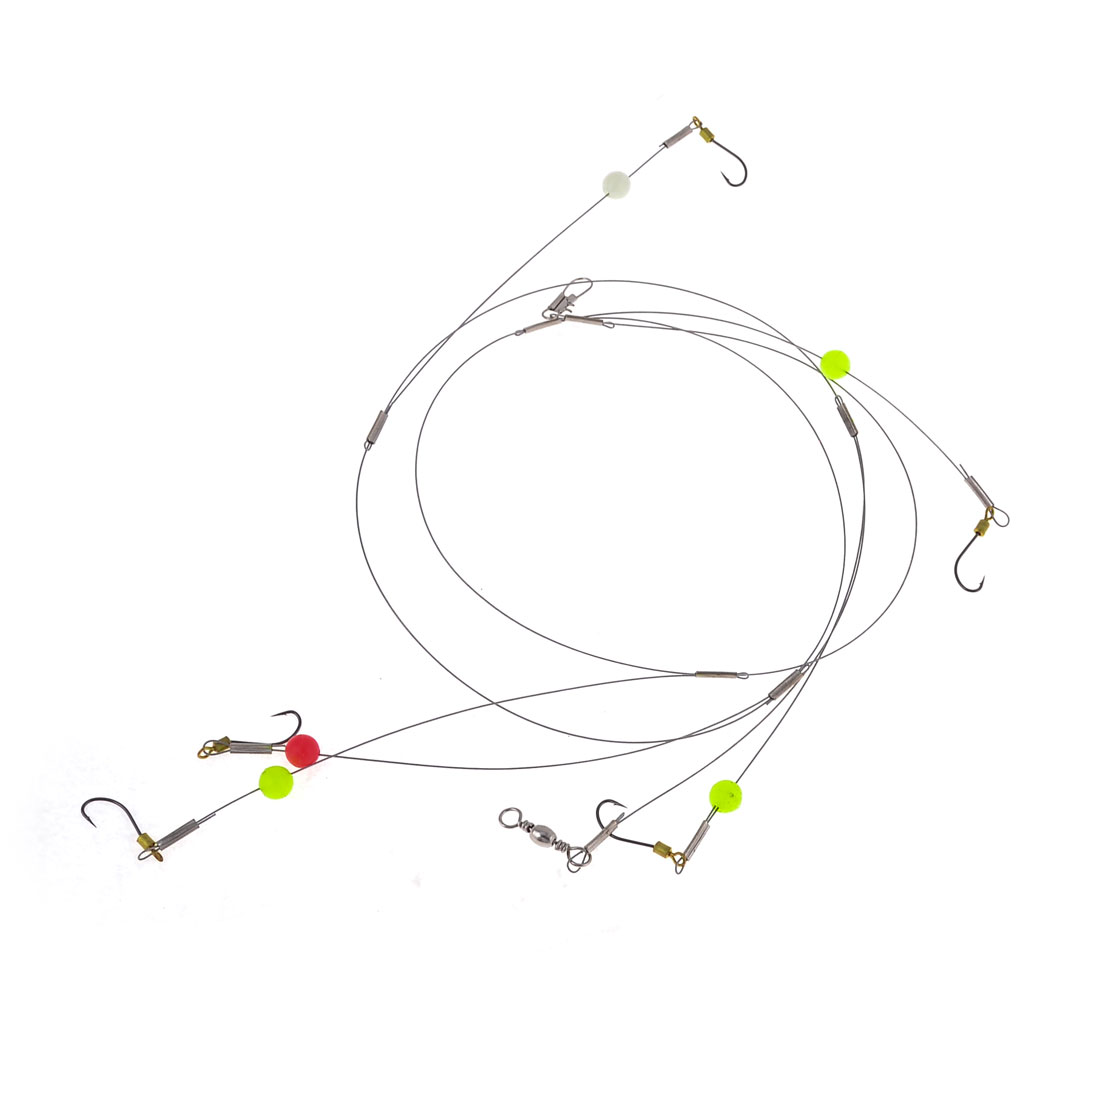 3.4Ft Length Cord Attach 12# Hook Fish Wire Leader Set for Angling